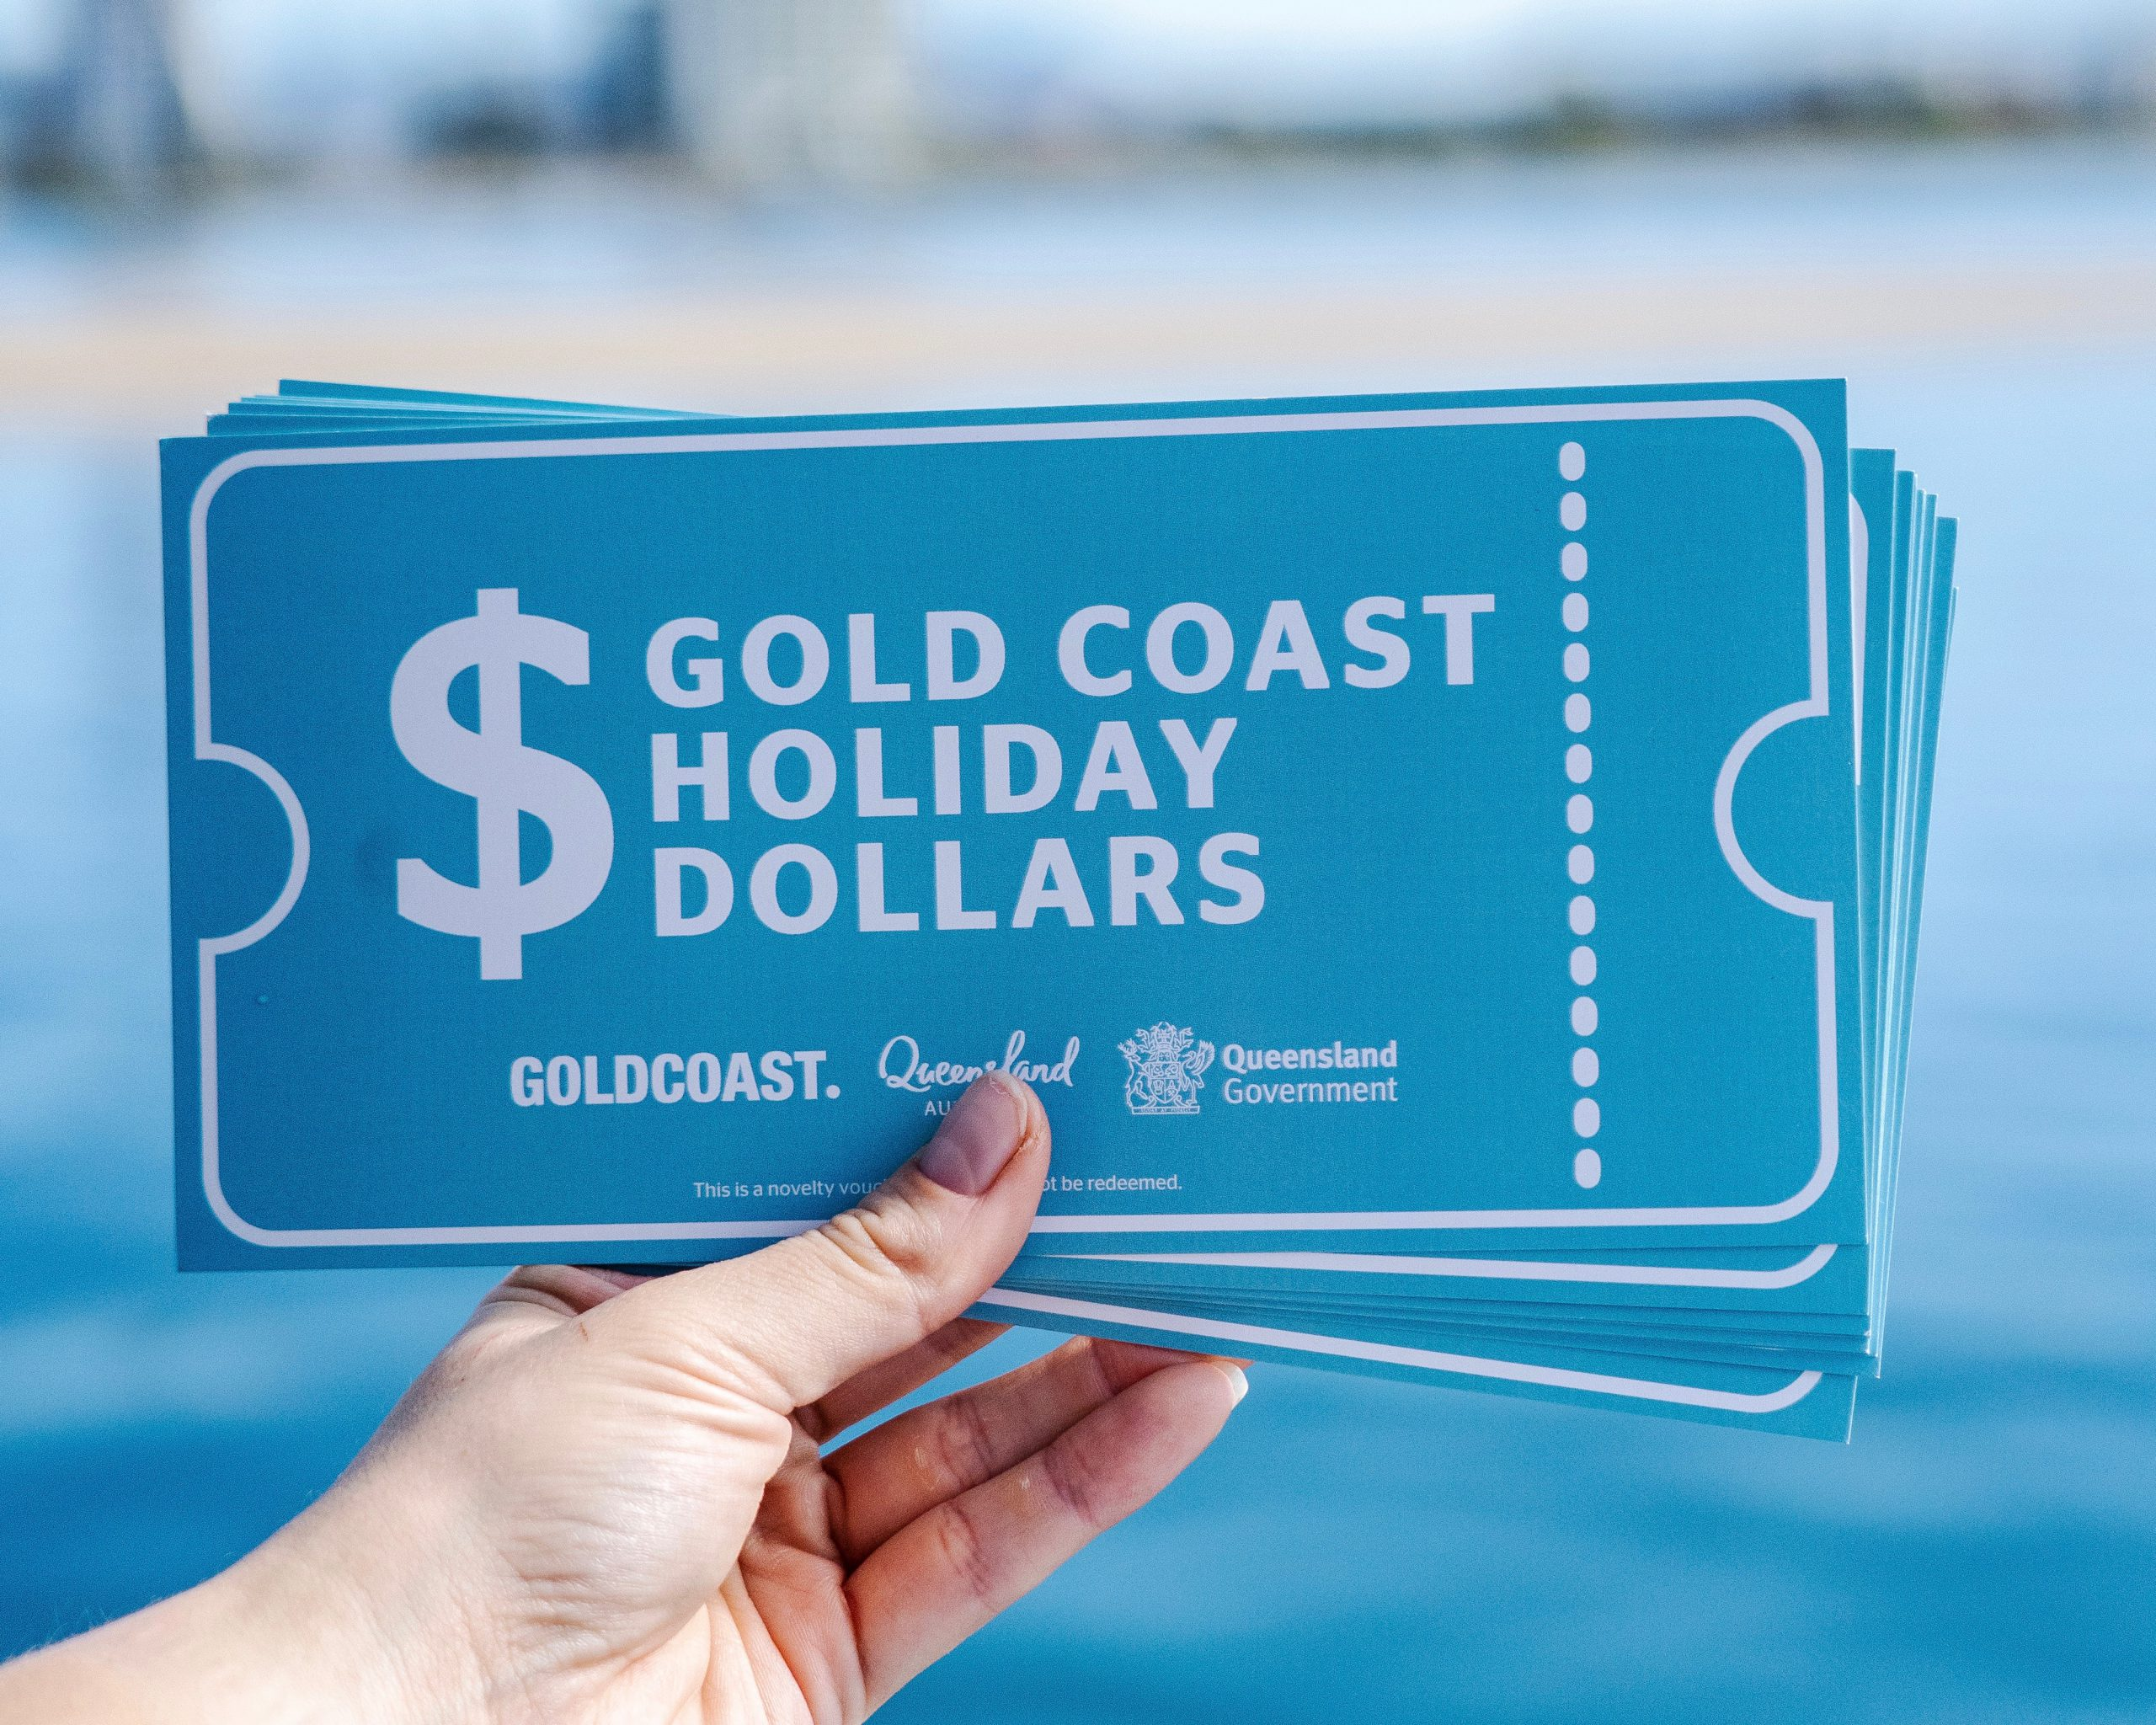 Makes a splash with Gold Coast Holiday Dollars